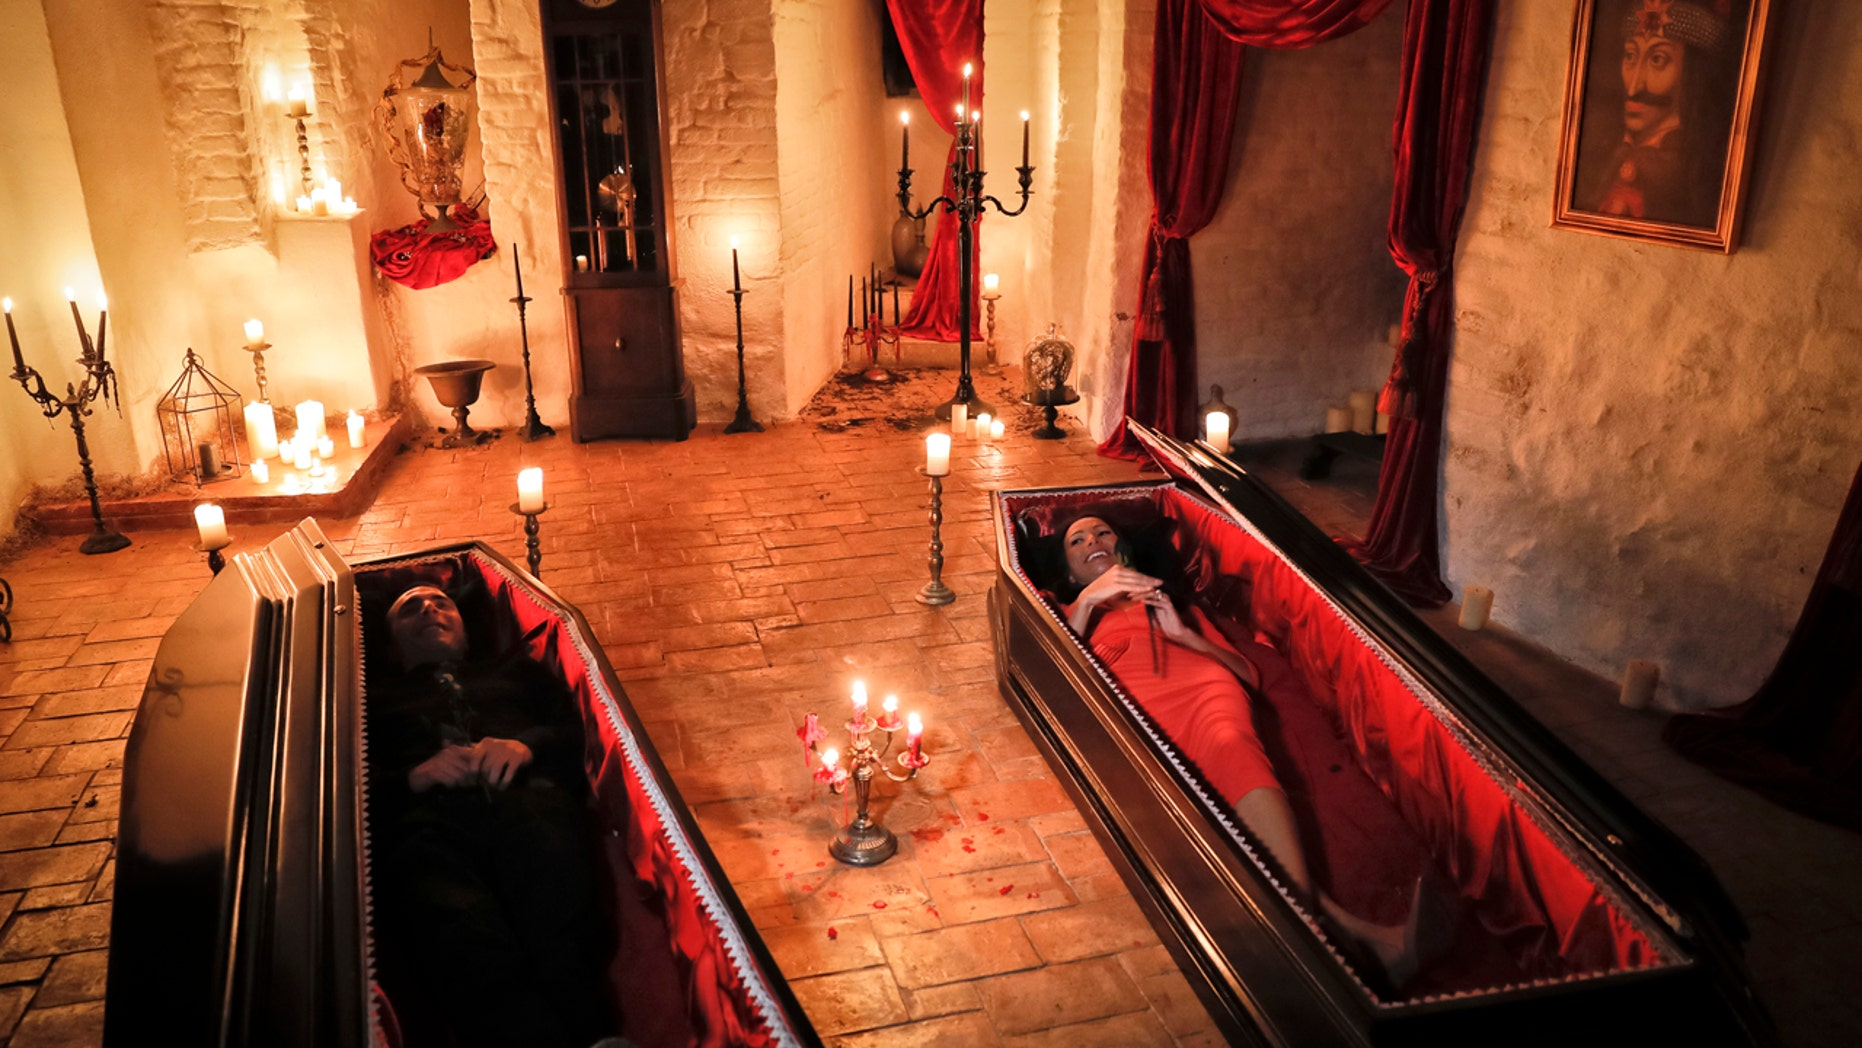 Tami Varma, right, and her brother Robin, the grandchildren of Devendra Varma, a scholar of English gothic tales and an expert in vampire lore, pose in coffins, at the Bran Castle, in Bran, Romania, Monday, Oct. 31, 2016.